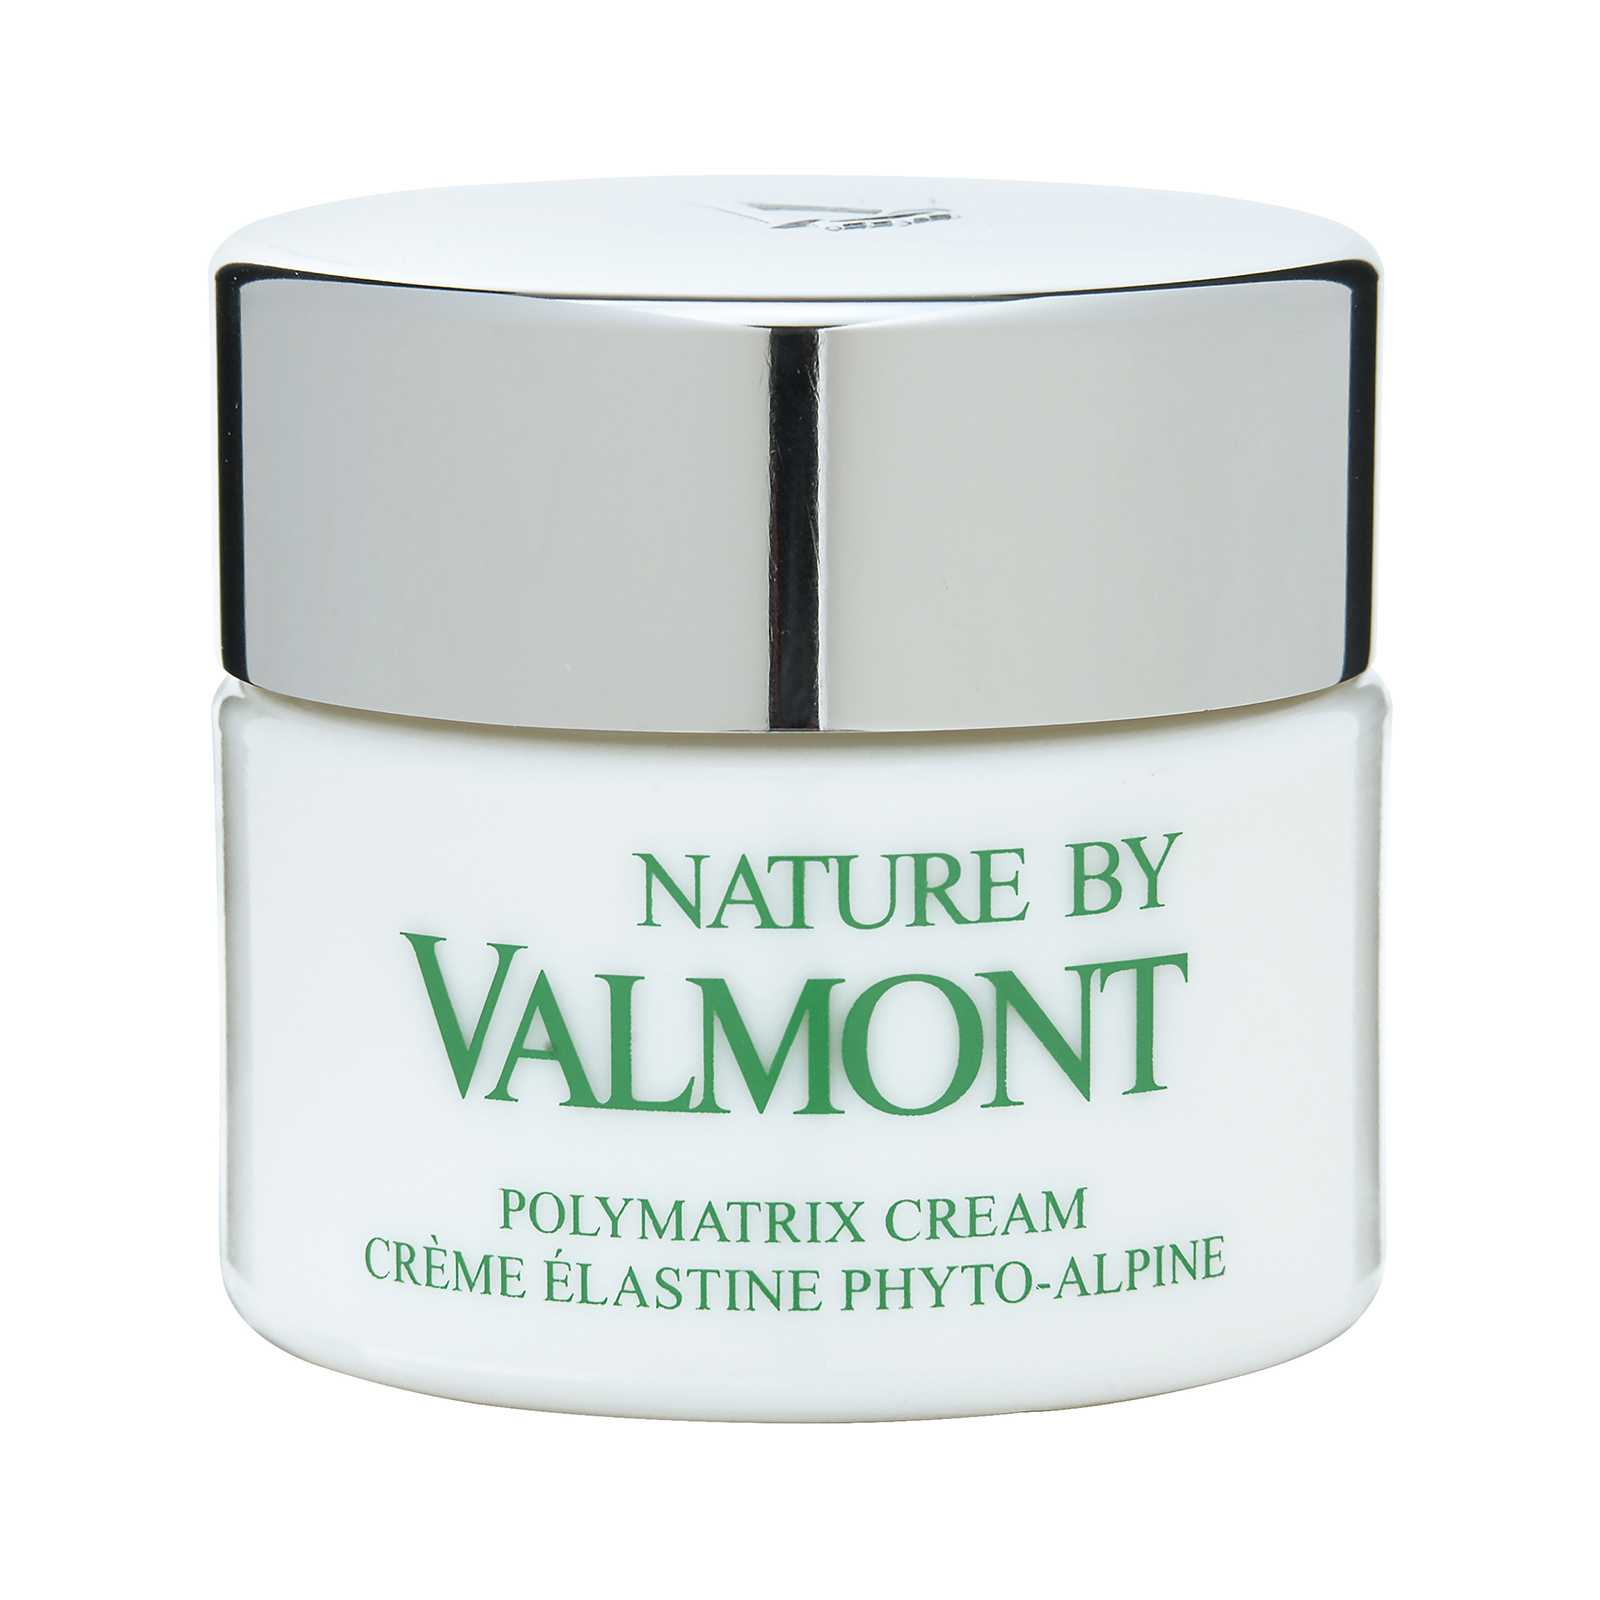 Valmont Nature by Valmont Polymatrix Cream 1.7oz, 50ml